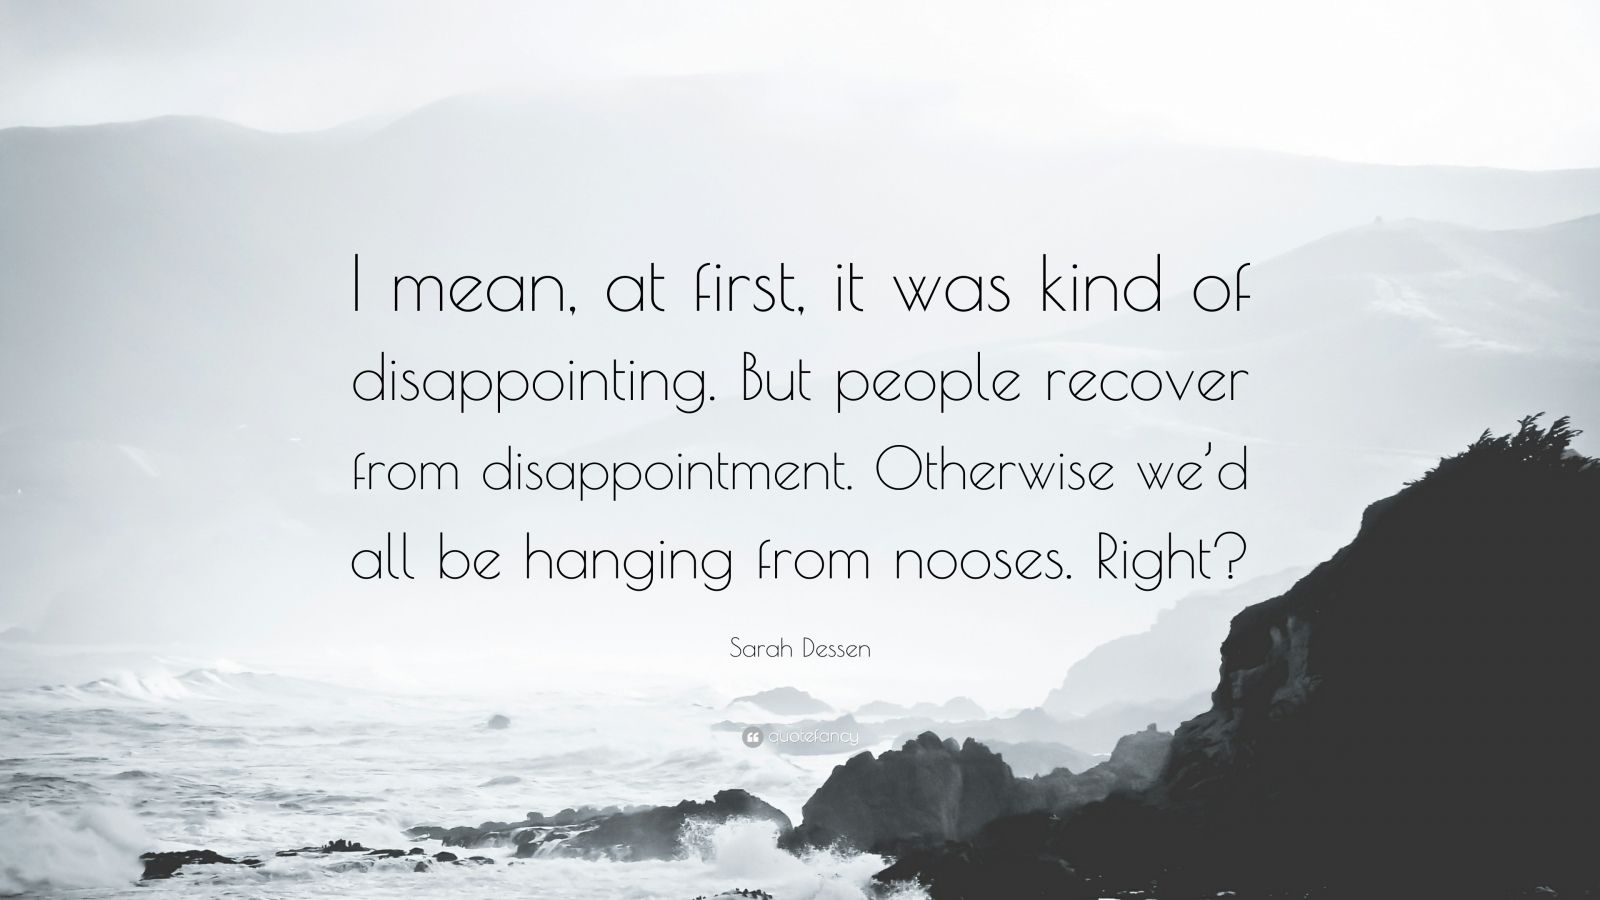 """Sarah Dessen Quote: """"I mean, at first, it was kind of disappointing. But people recover from disappointment. Otherwise we'd all be hanging from nooses. Right?"""""""